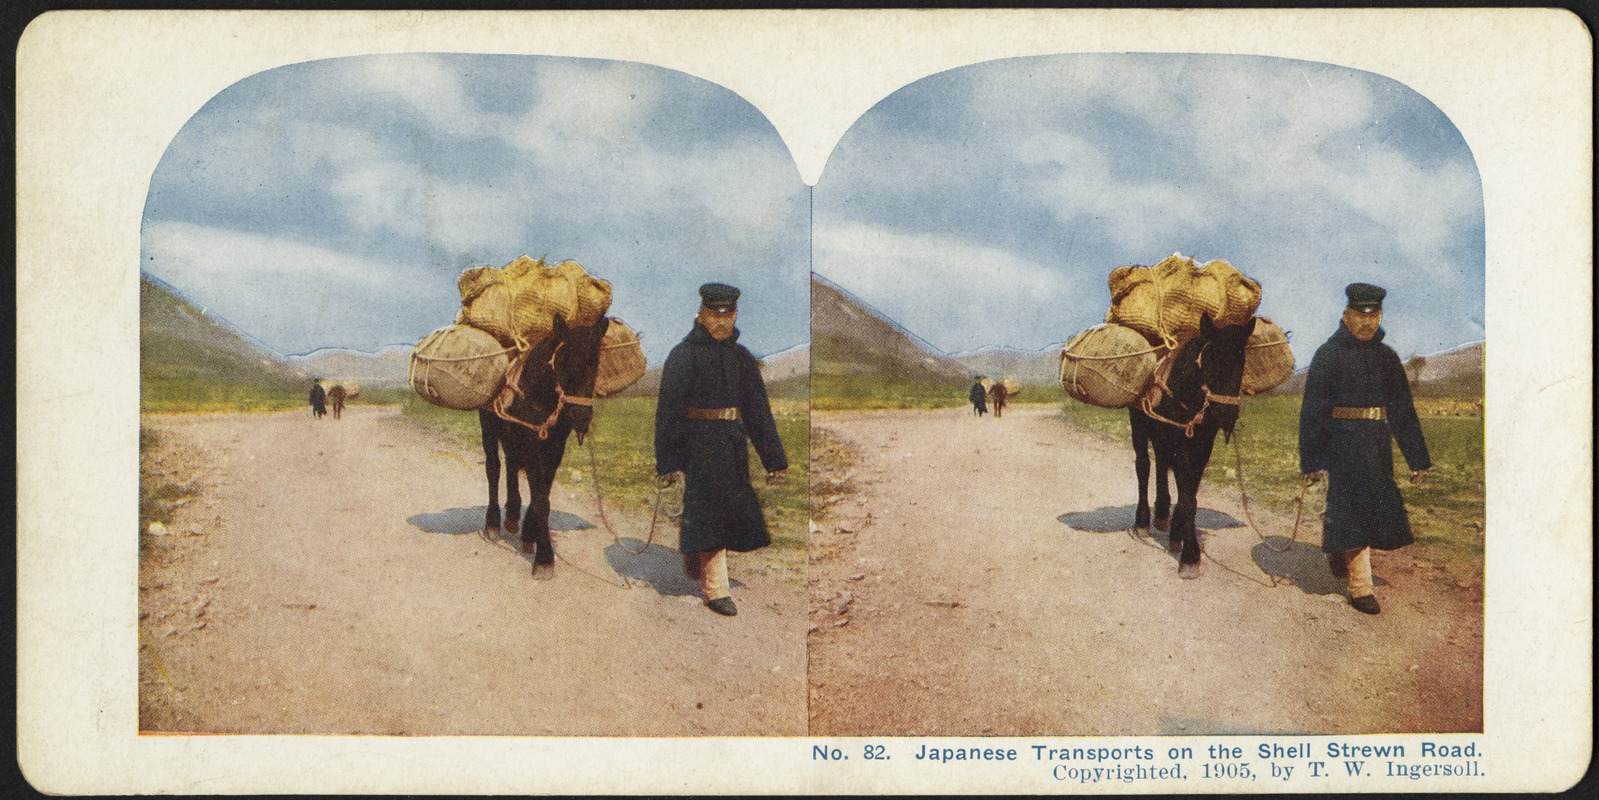 Japanese transports on the shell strewn road